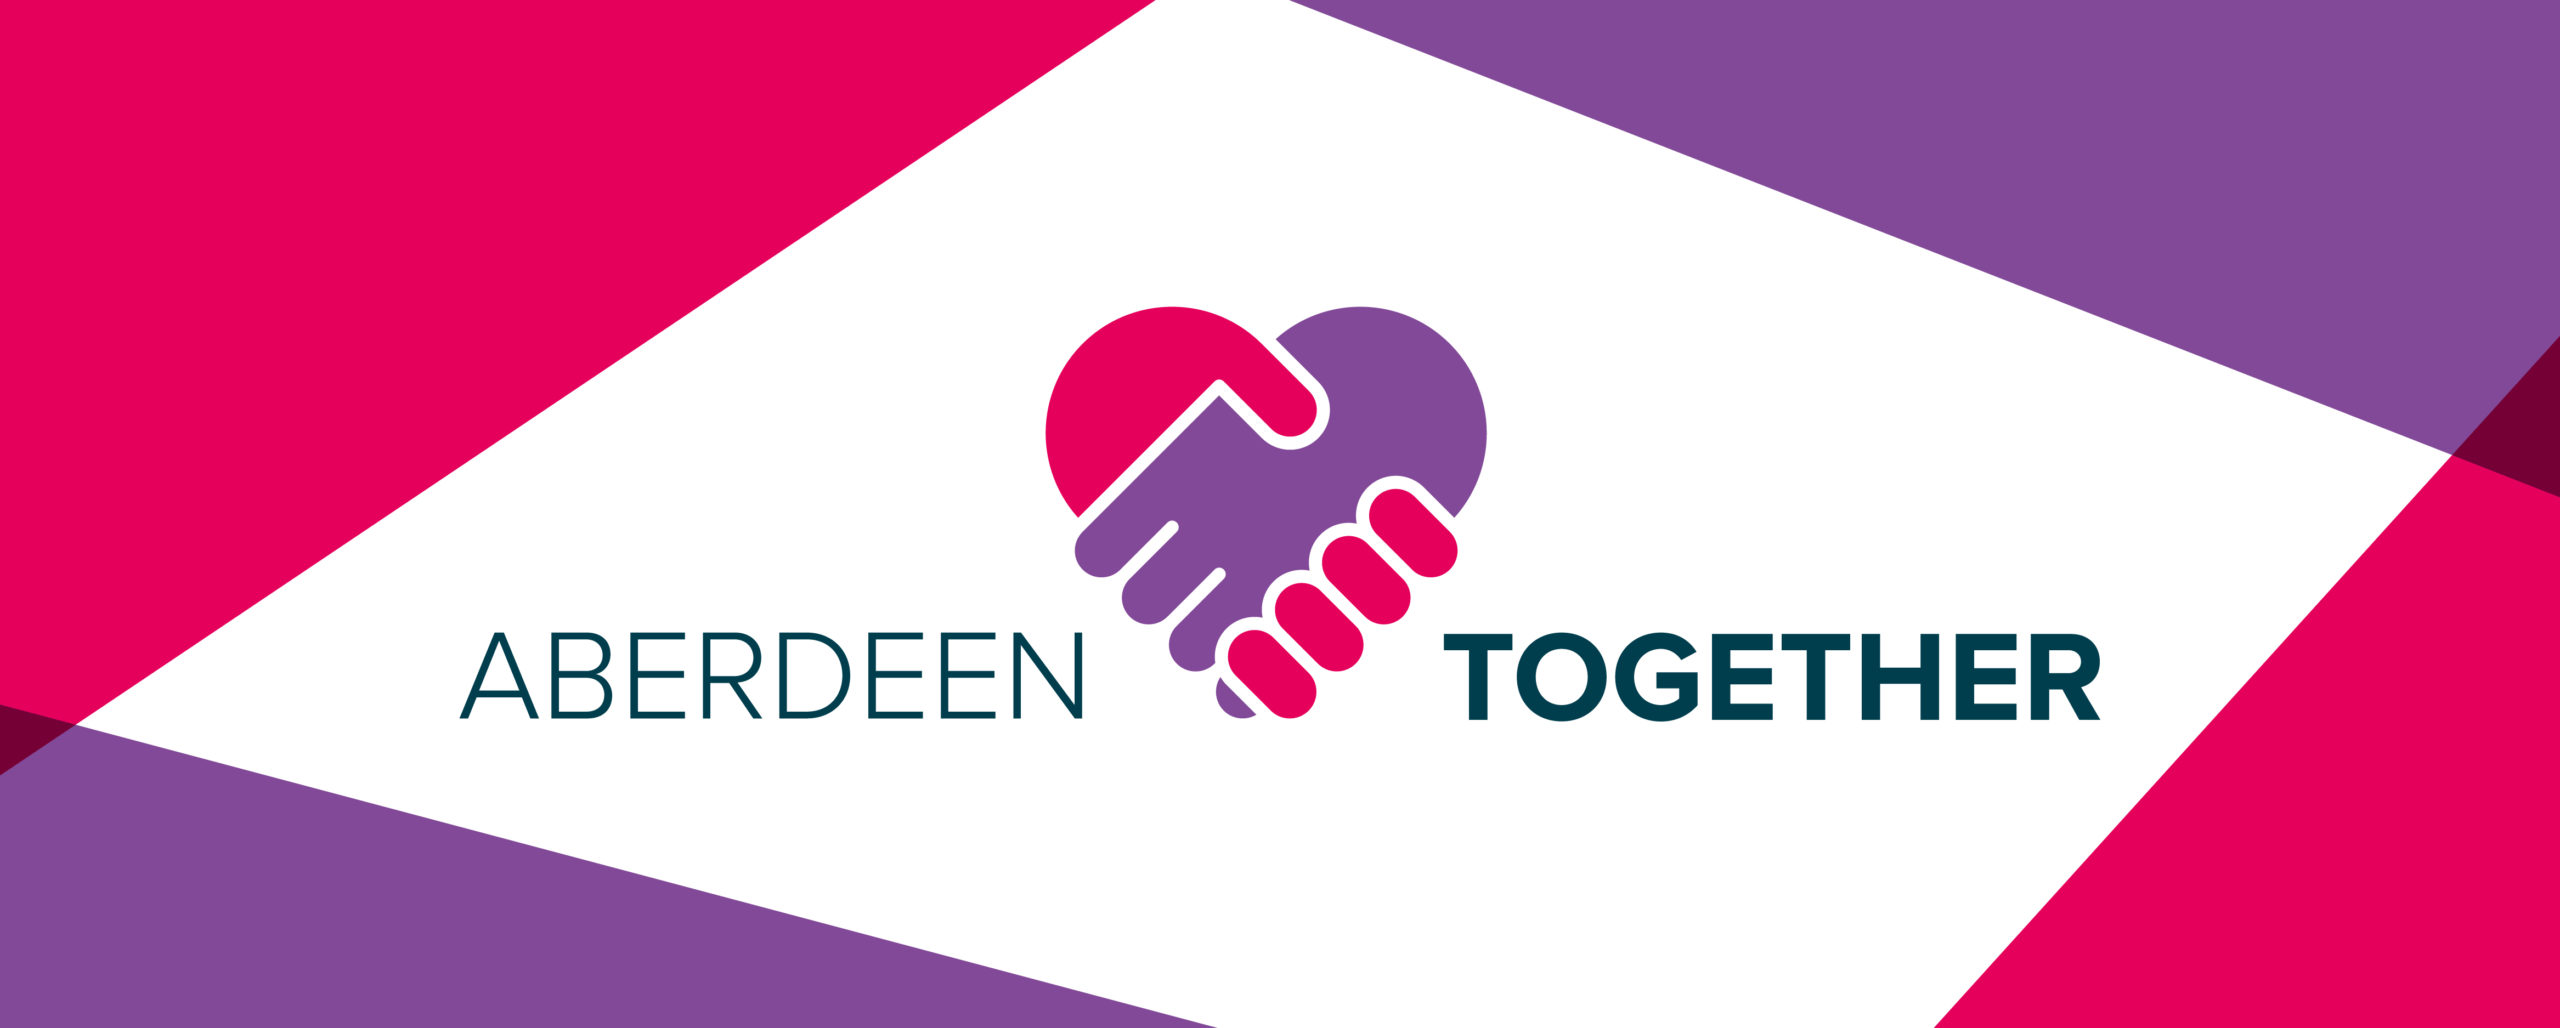 Aberdeen Together highlights the positive work of people in the area